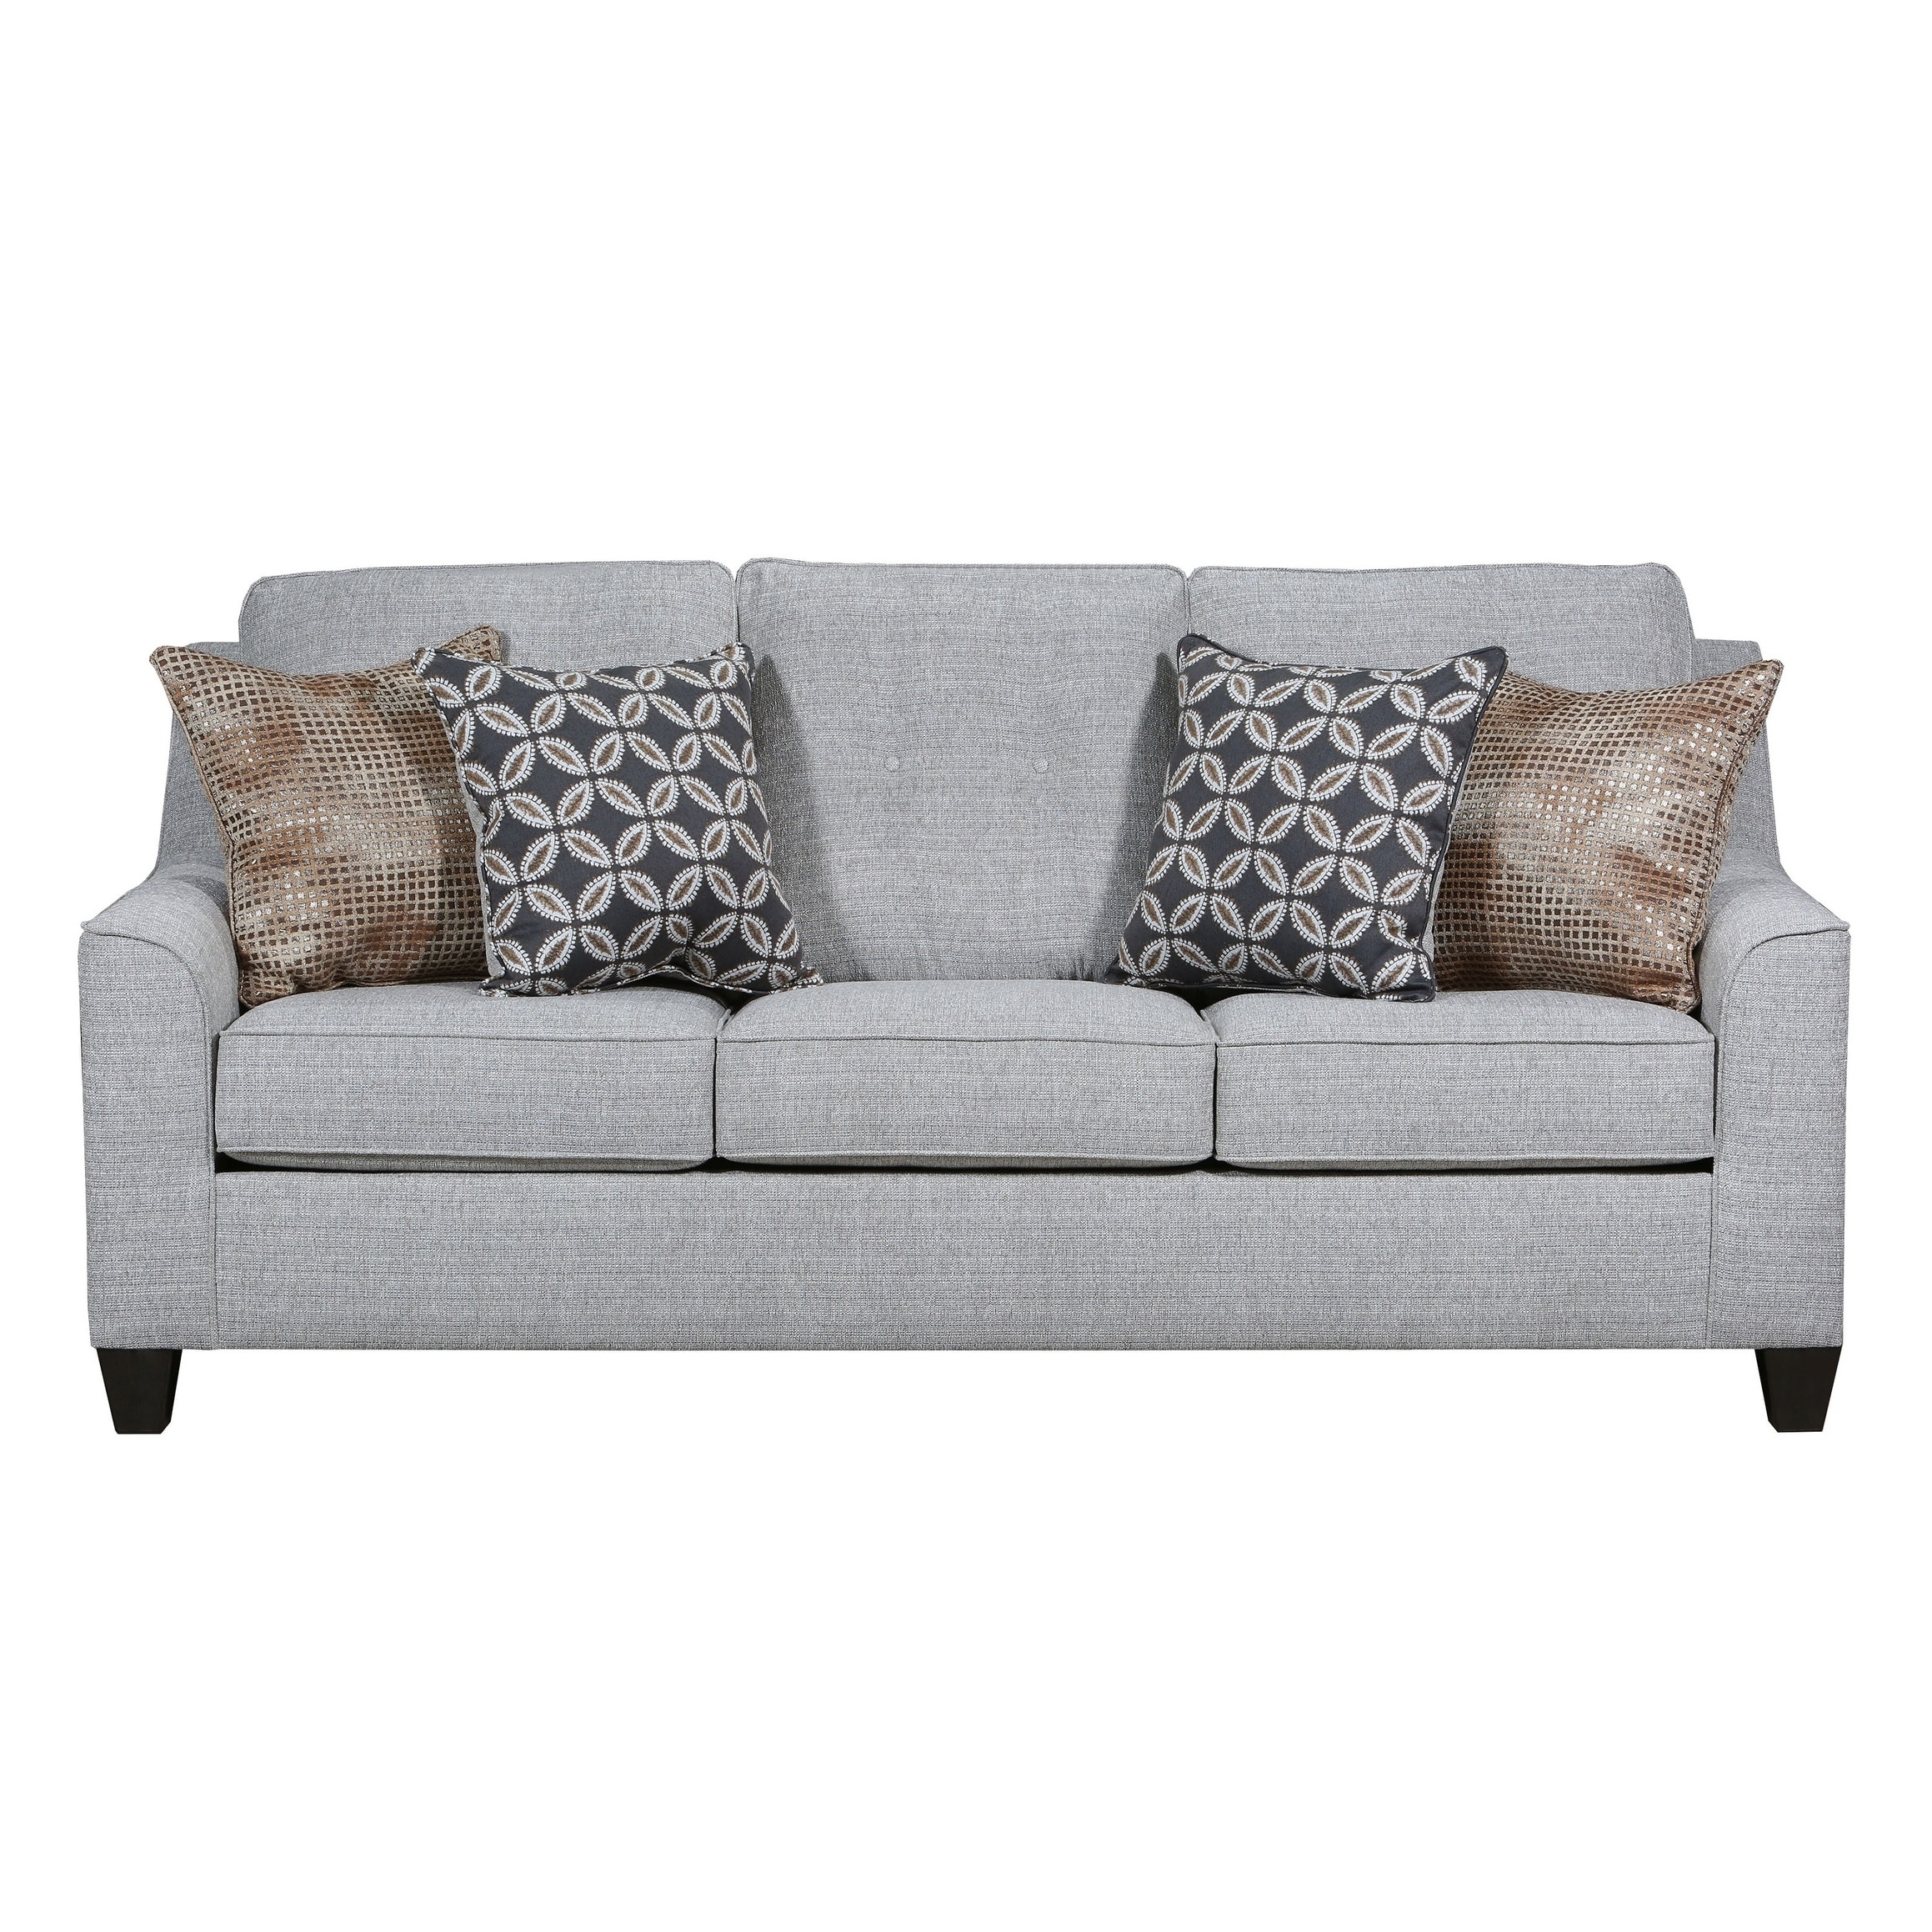 Tilly Fabric Sofa Queen Sleeper Zina Queen Sleeper Sofa